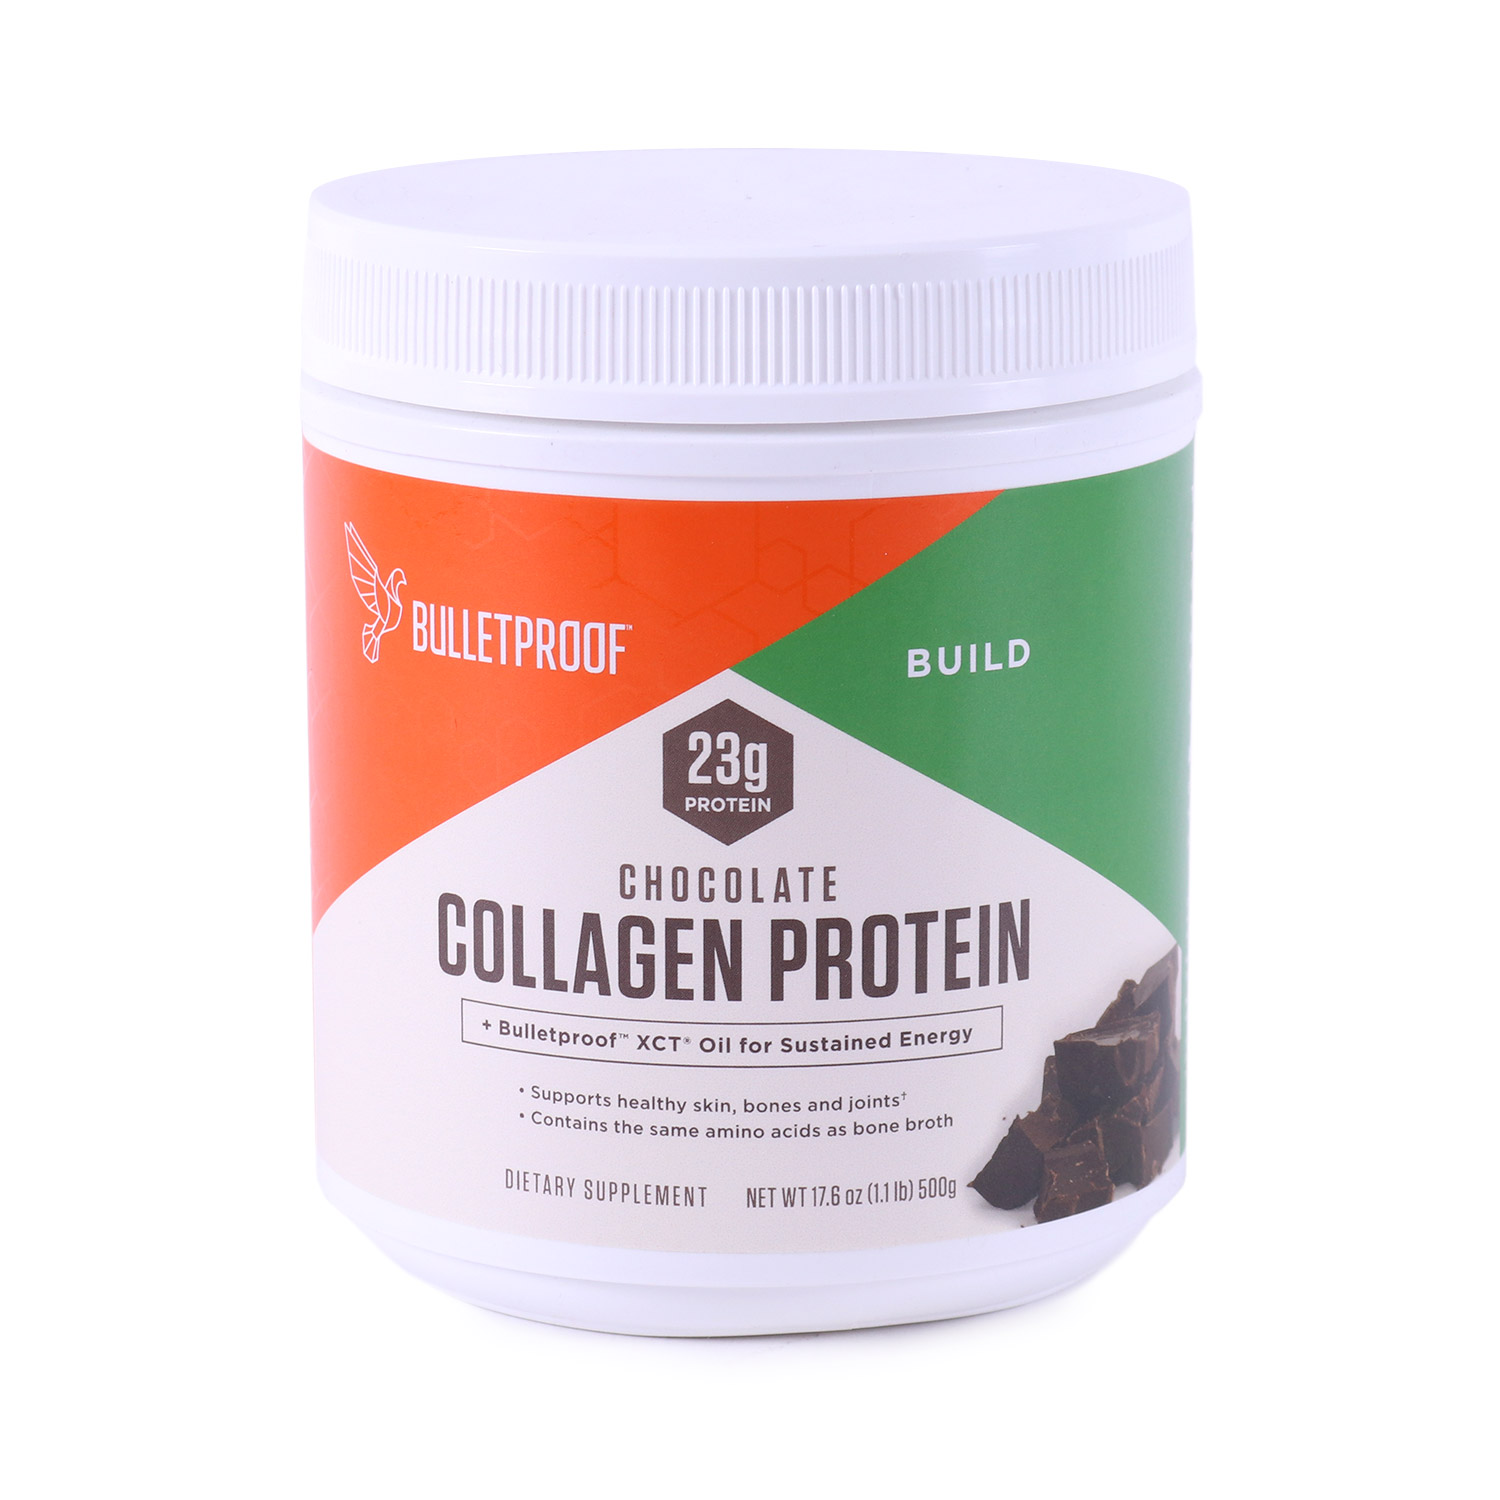 Collagen Protein, Chocolate